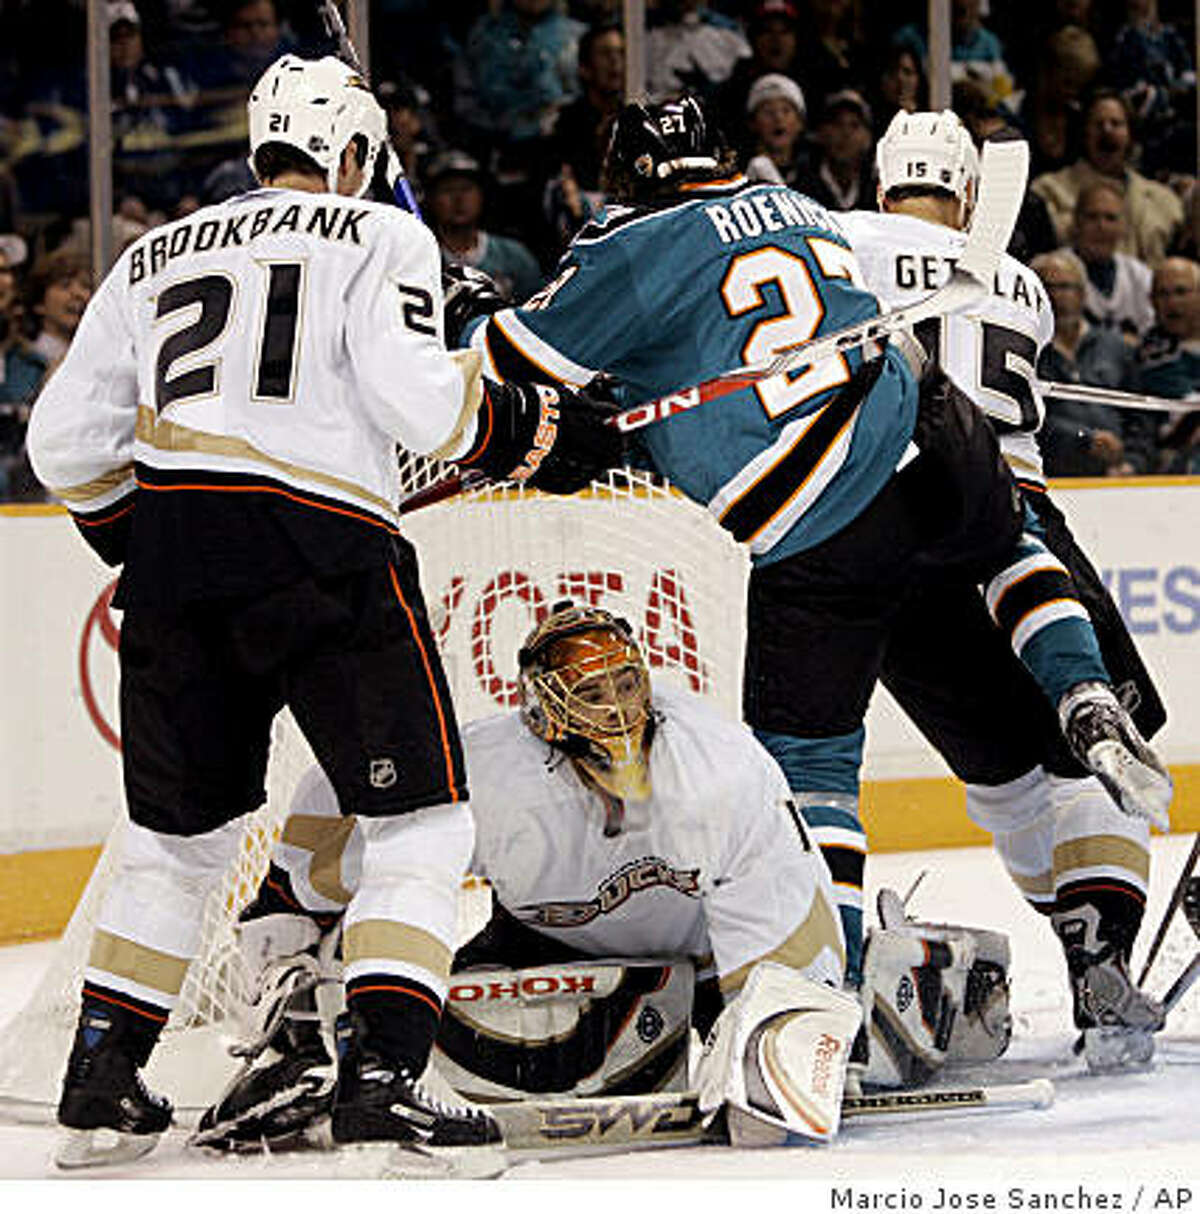 Anaheim Ducks goalie Jonas Hiller, bottom center, stops a shot attempt from San Jose Sharks center Jeremy Roenick, second from right, as Sheldon Brookbank, left, and Ryan Getzlaf defend during the second period of Game 1.